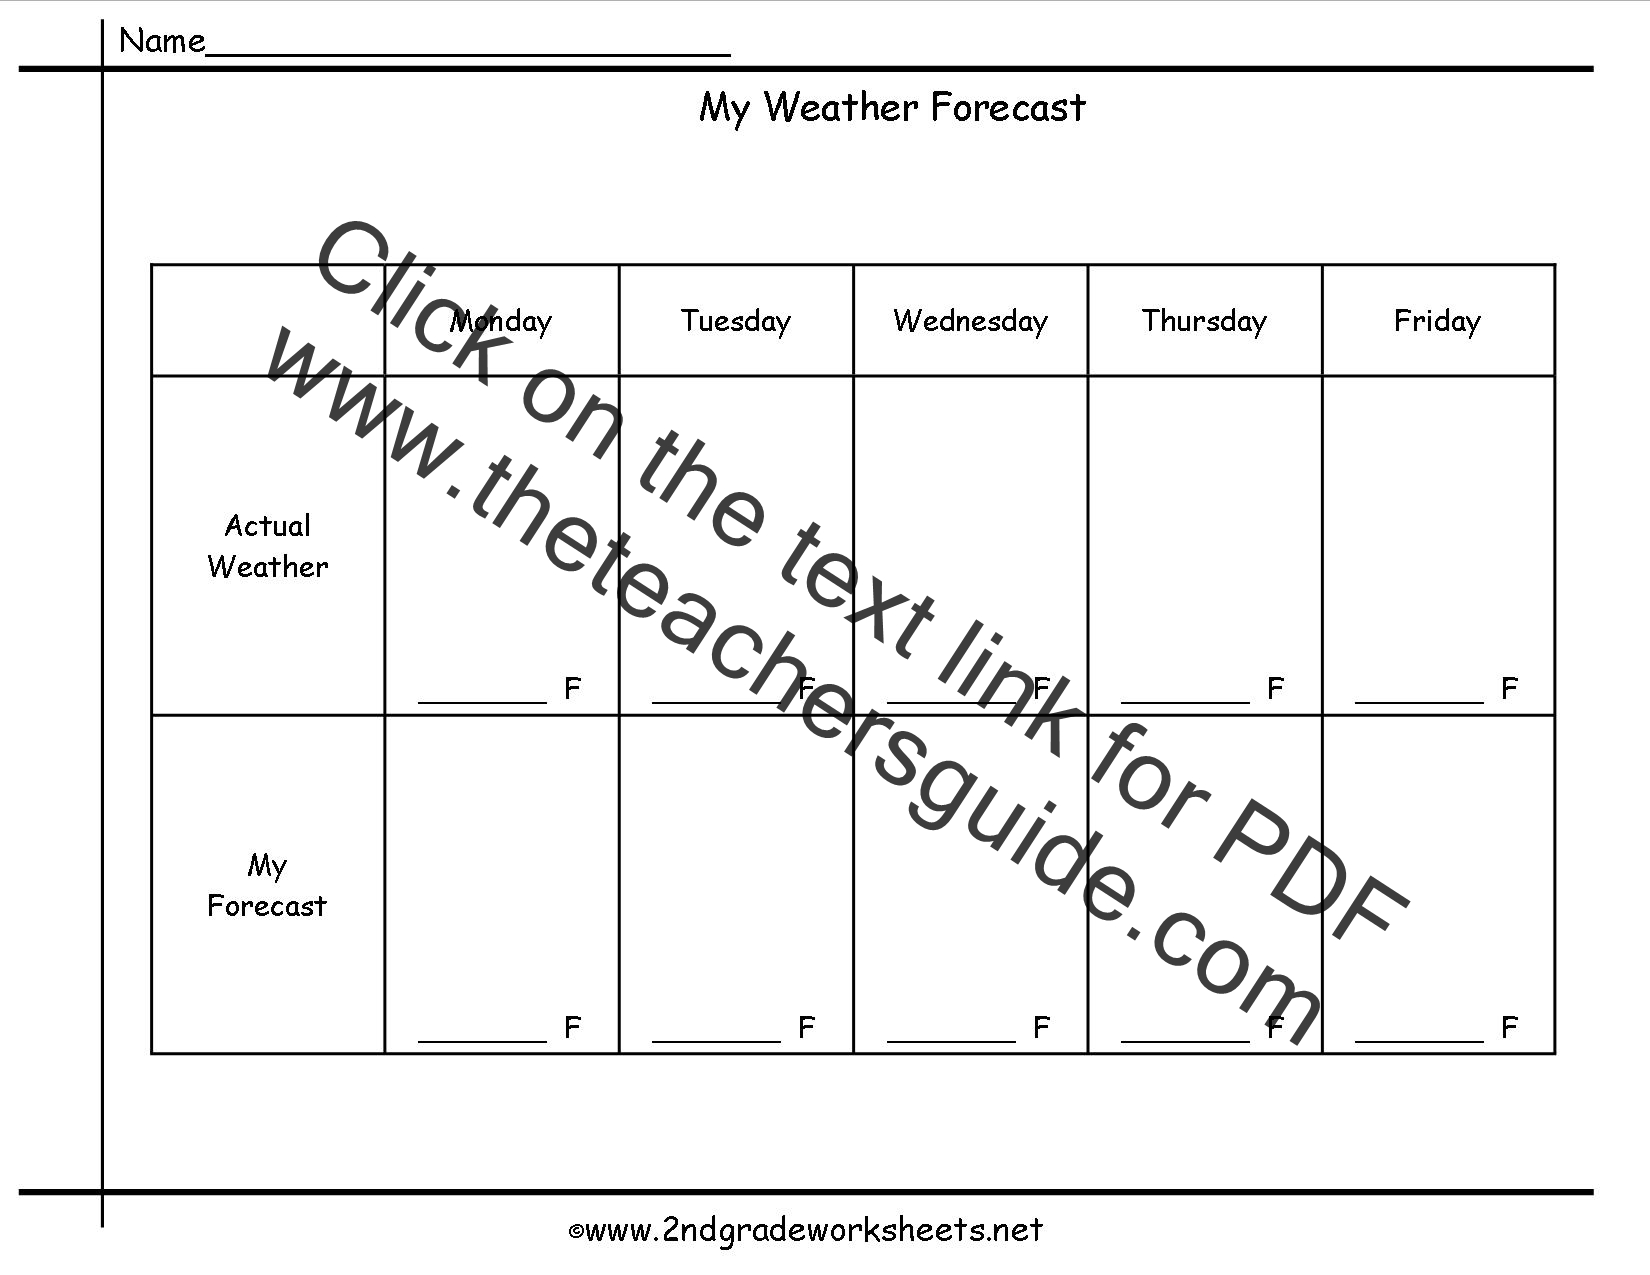 Printable Weather Forecast That Are Breathtaking